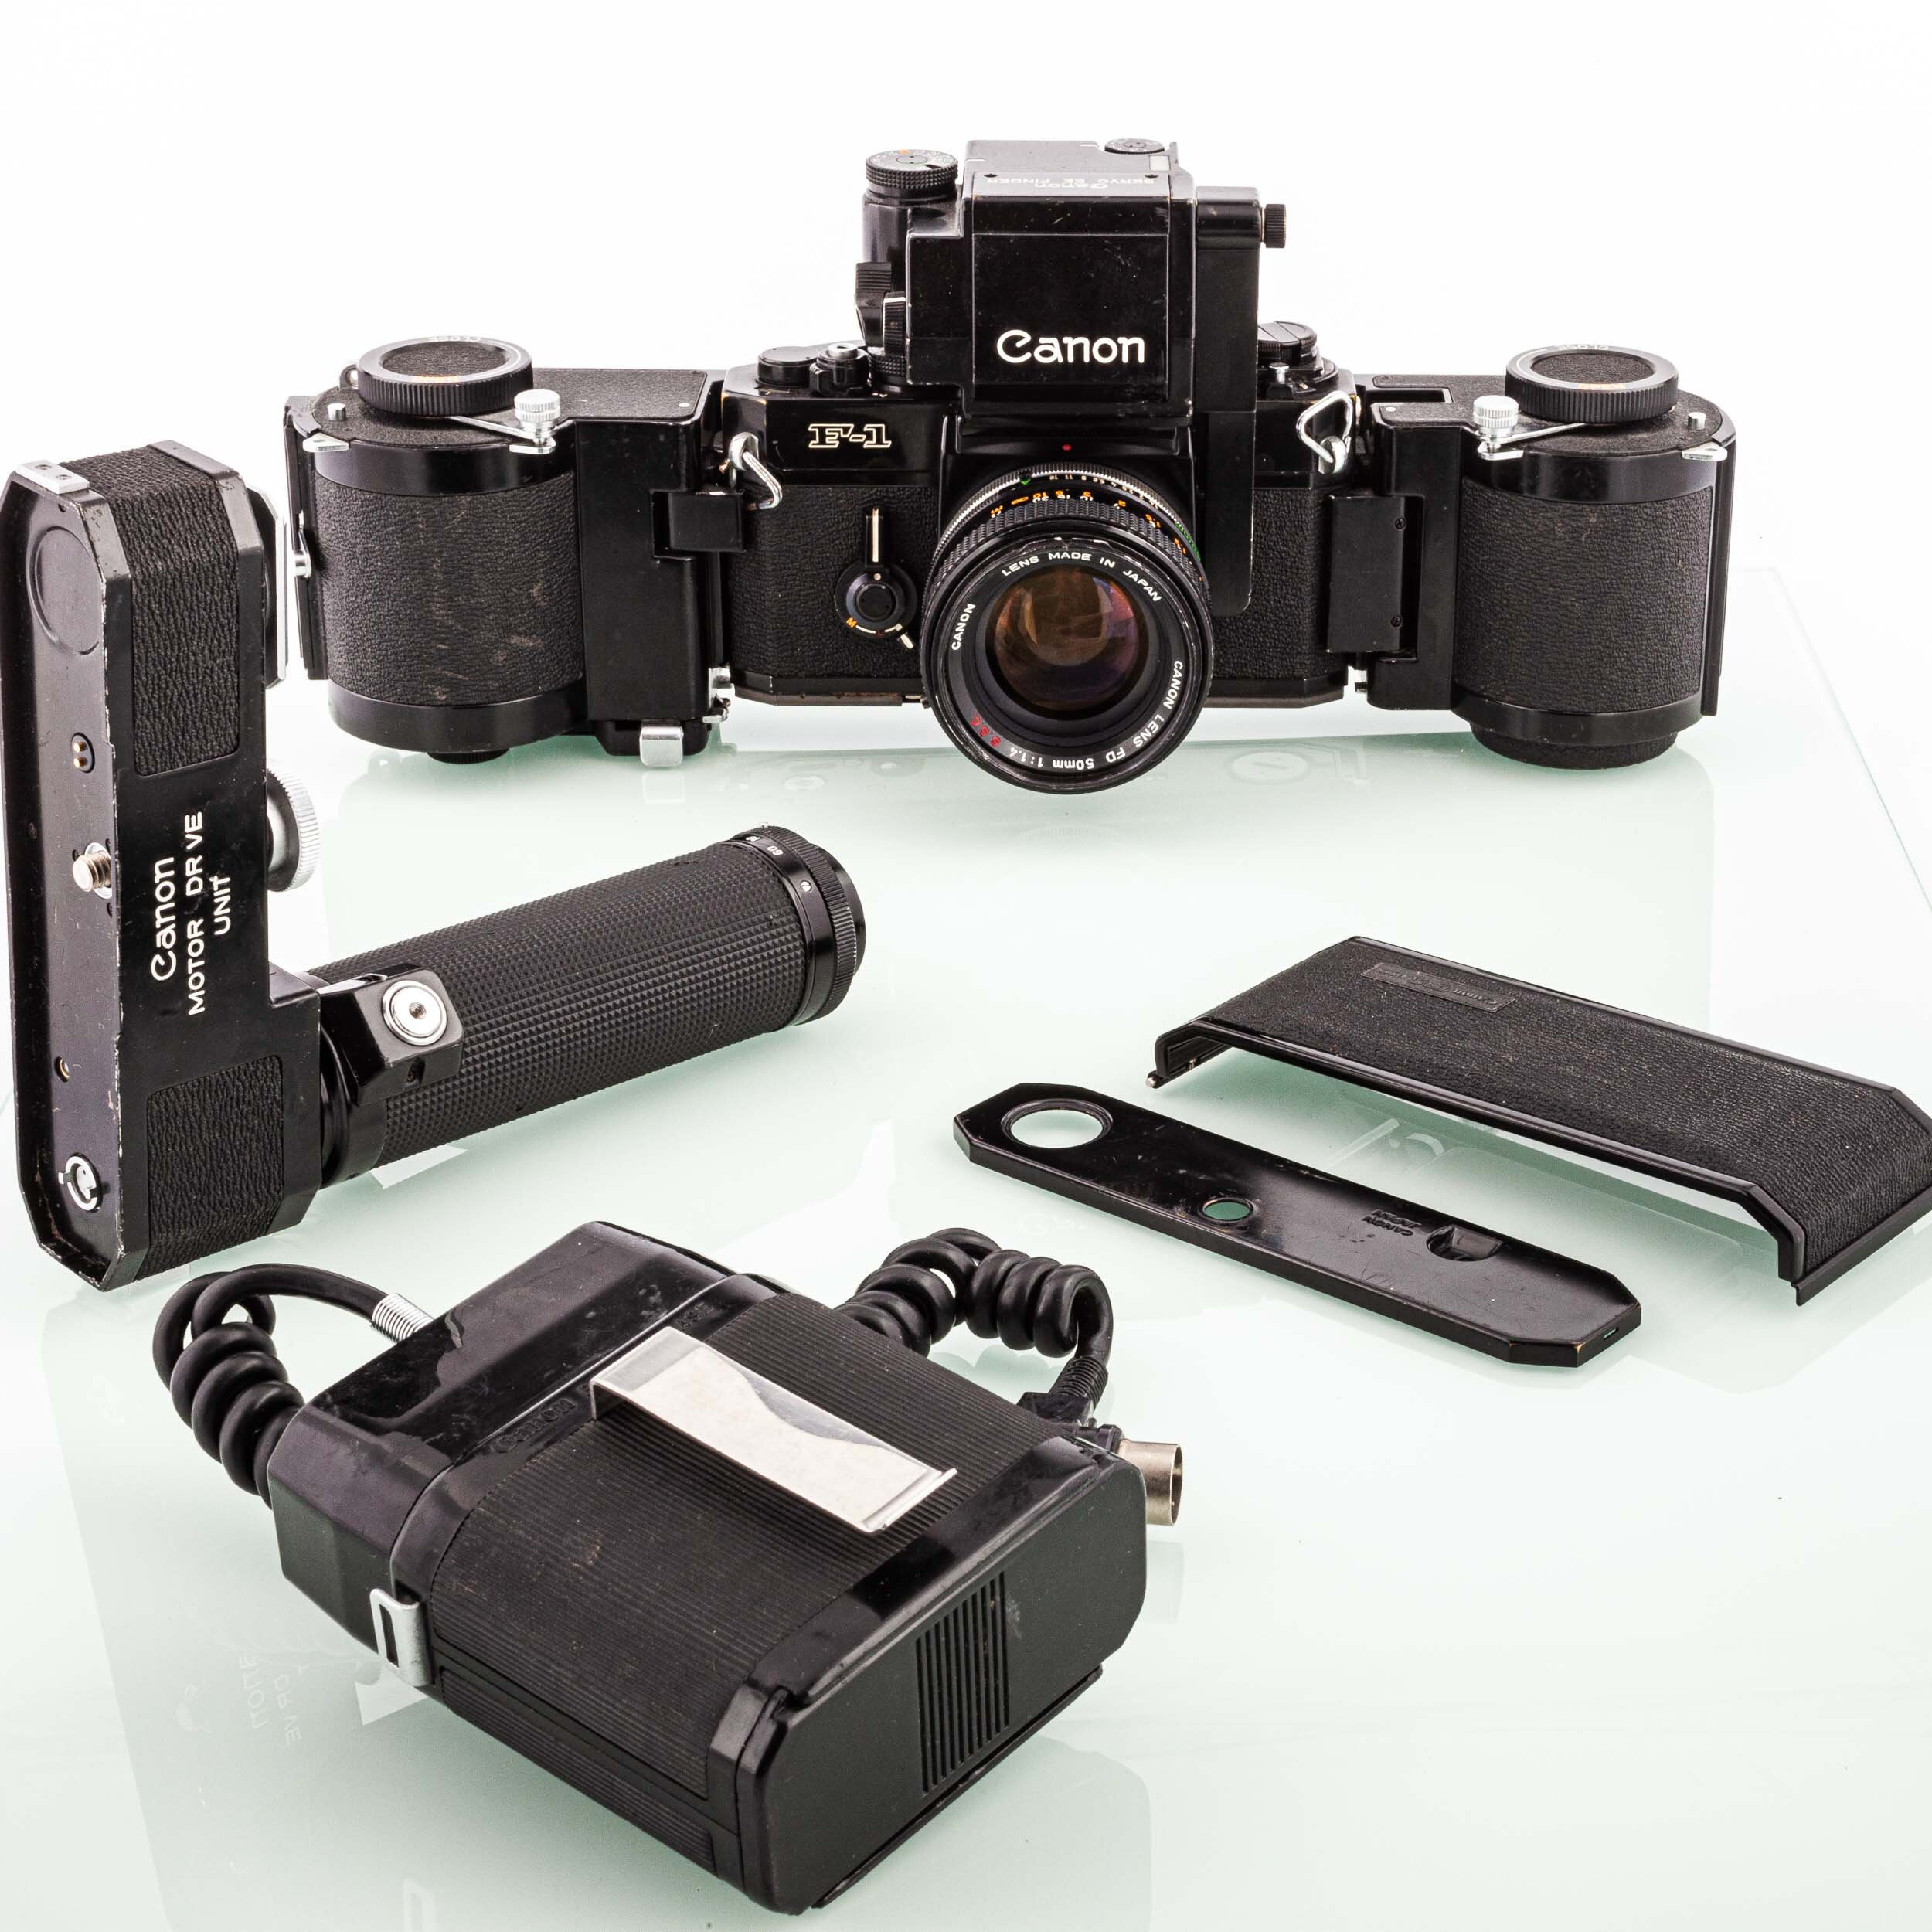 Canon F-1 motor DR VE Unit + Film Chamber 250 + Canon 1,4/50mm